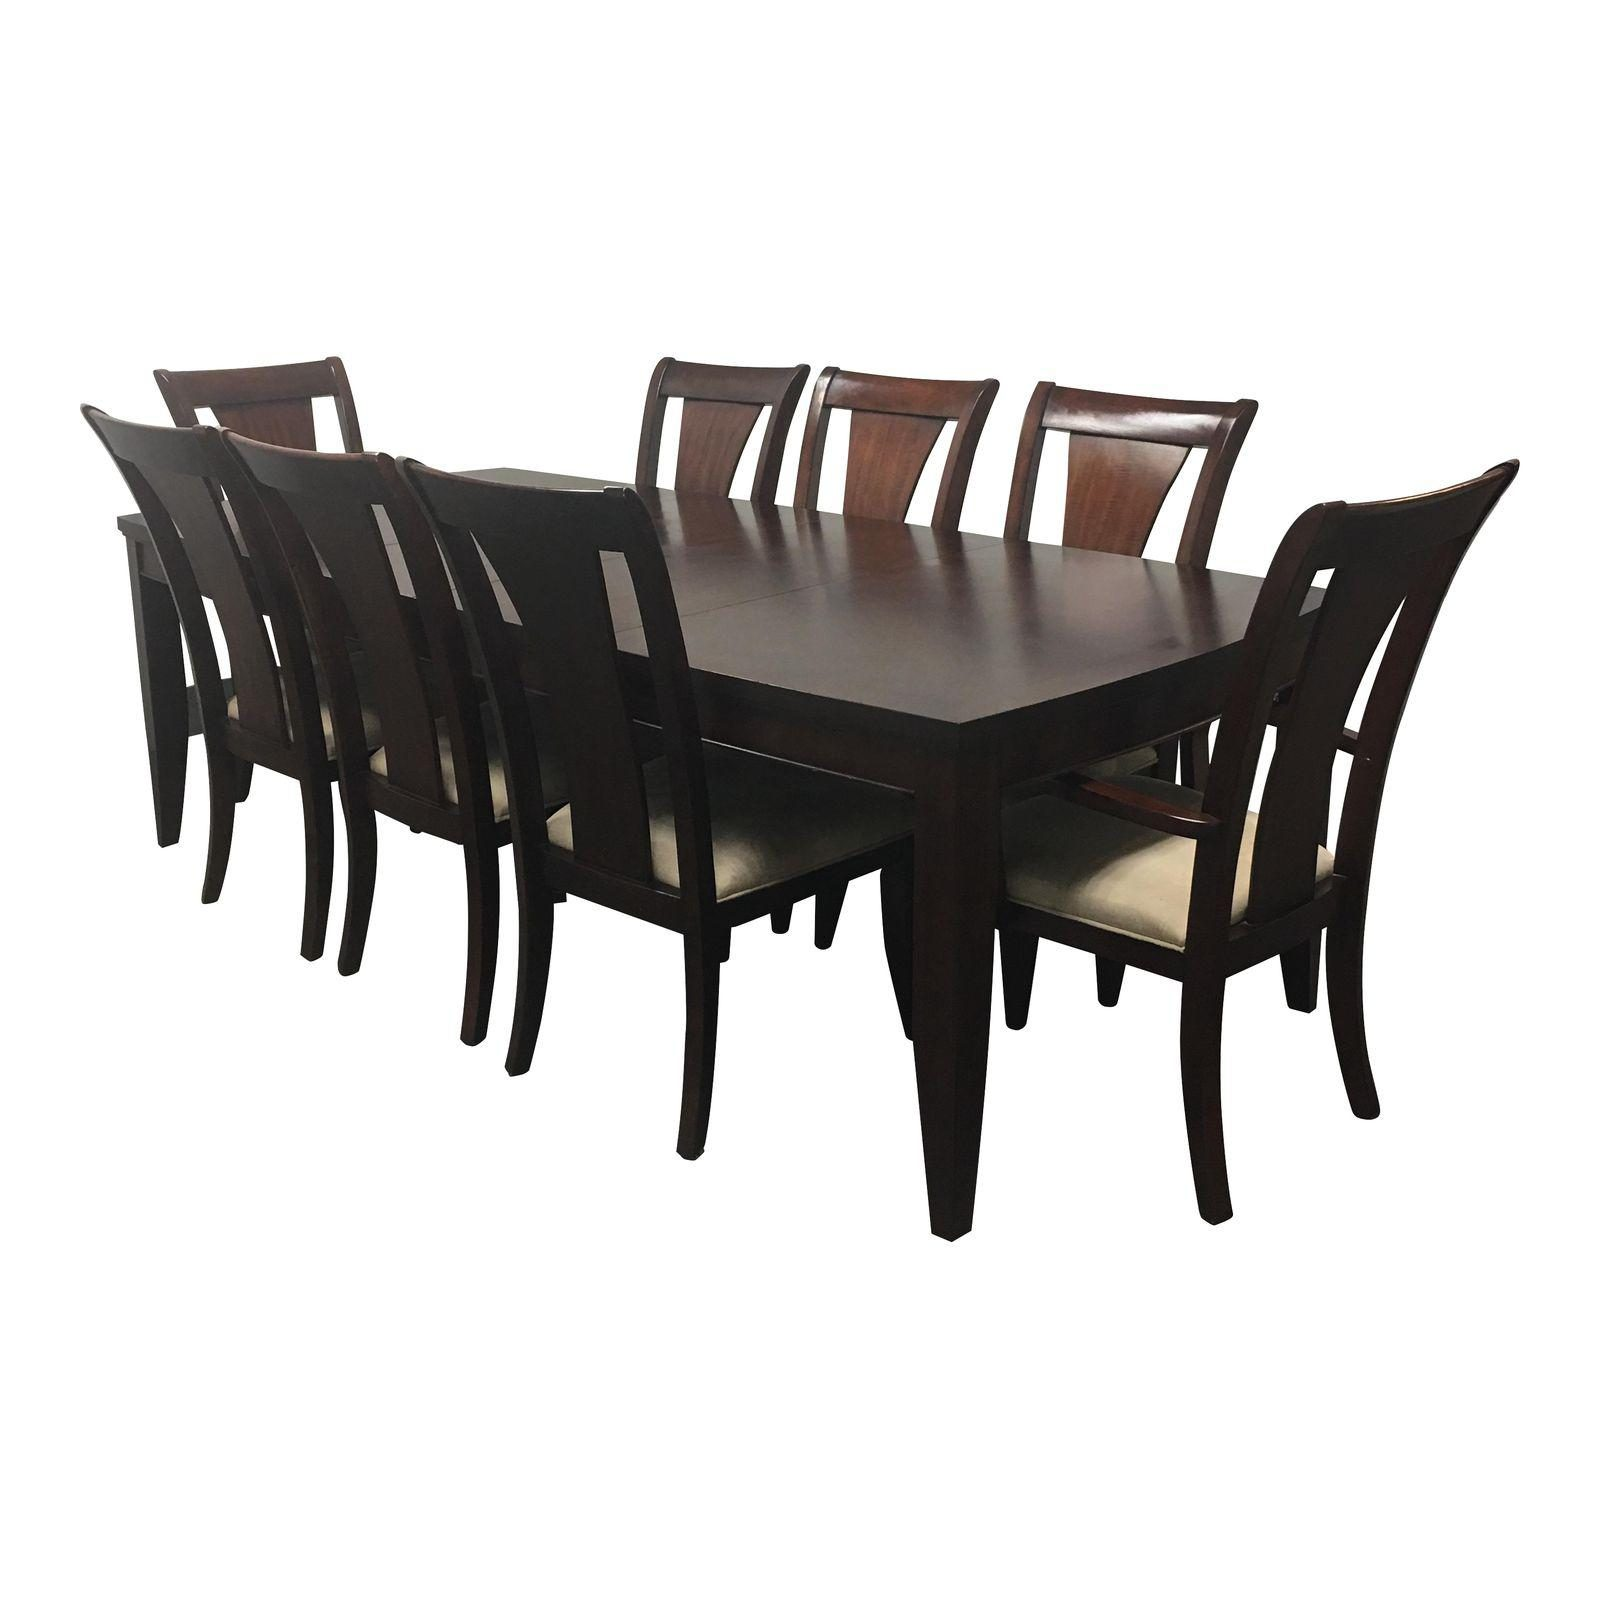 Wondrous Dining Table 2 Leaves Eight Chairs From Macys 5771 Design Interior Design Ideas Tzicisoteloinfo